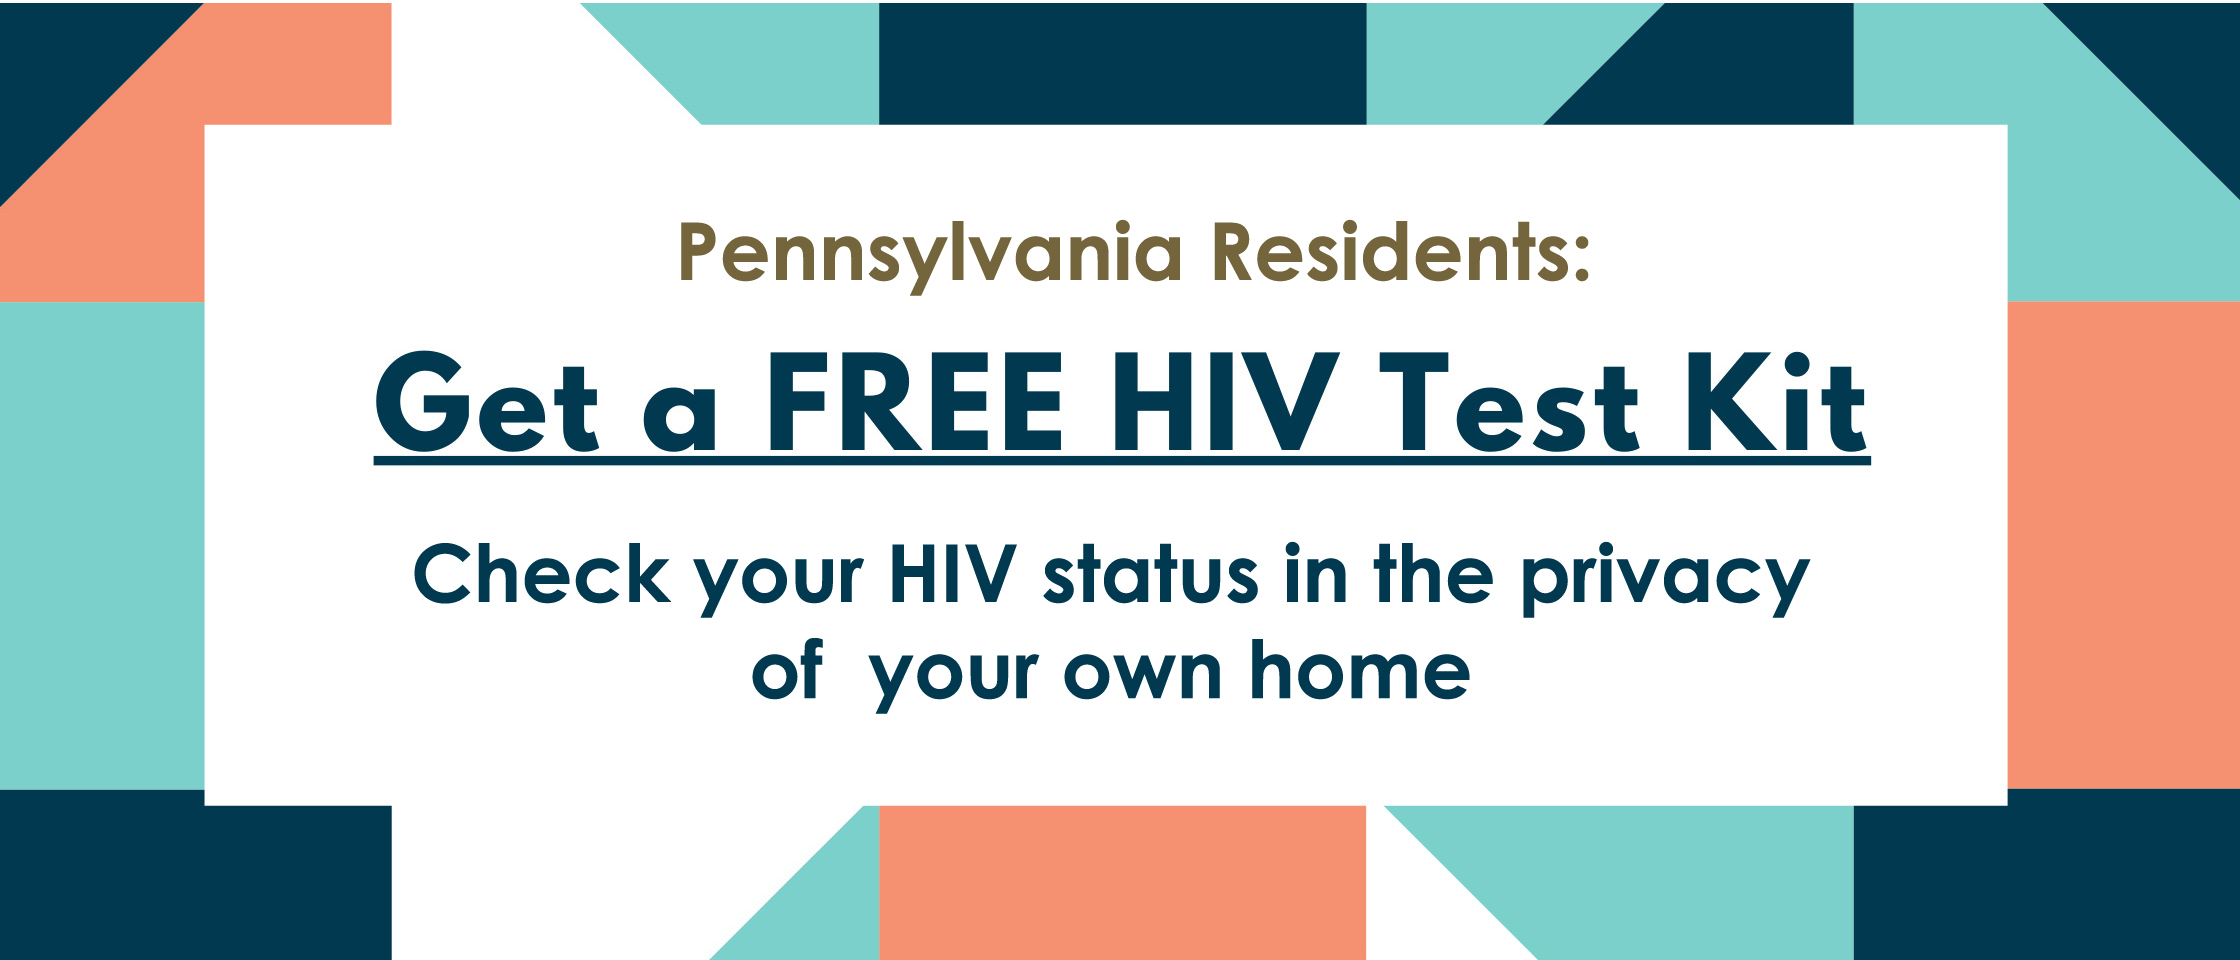 text saying get a free H I V test kit